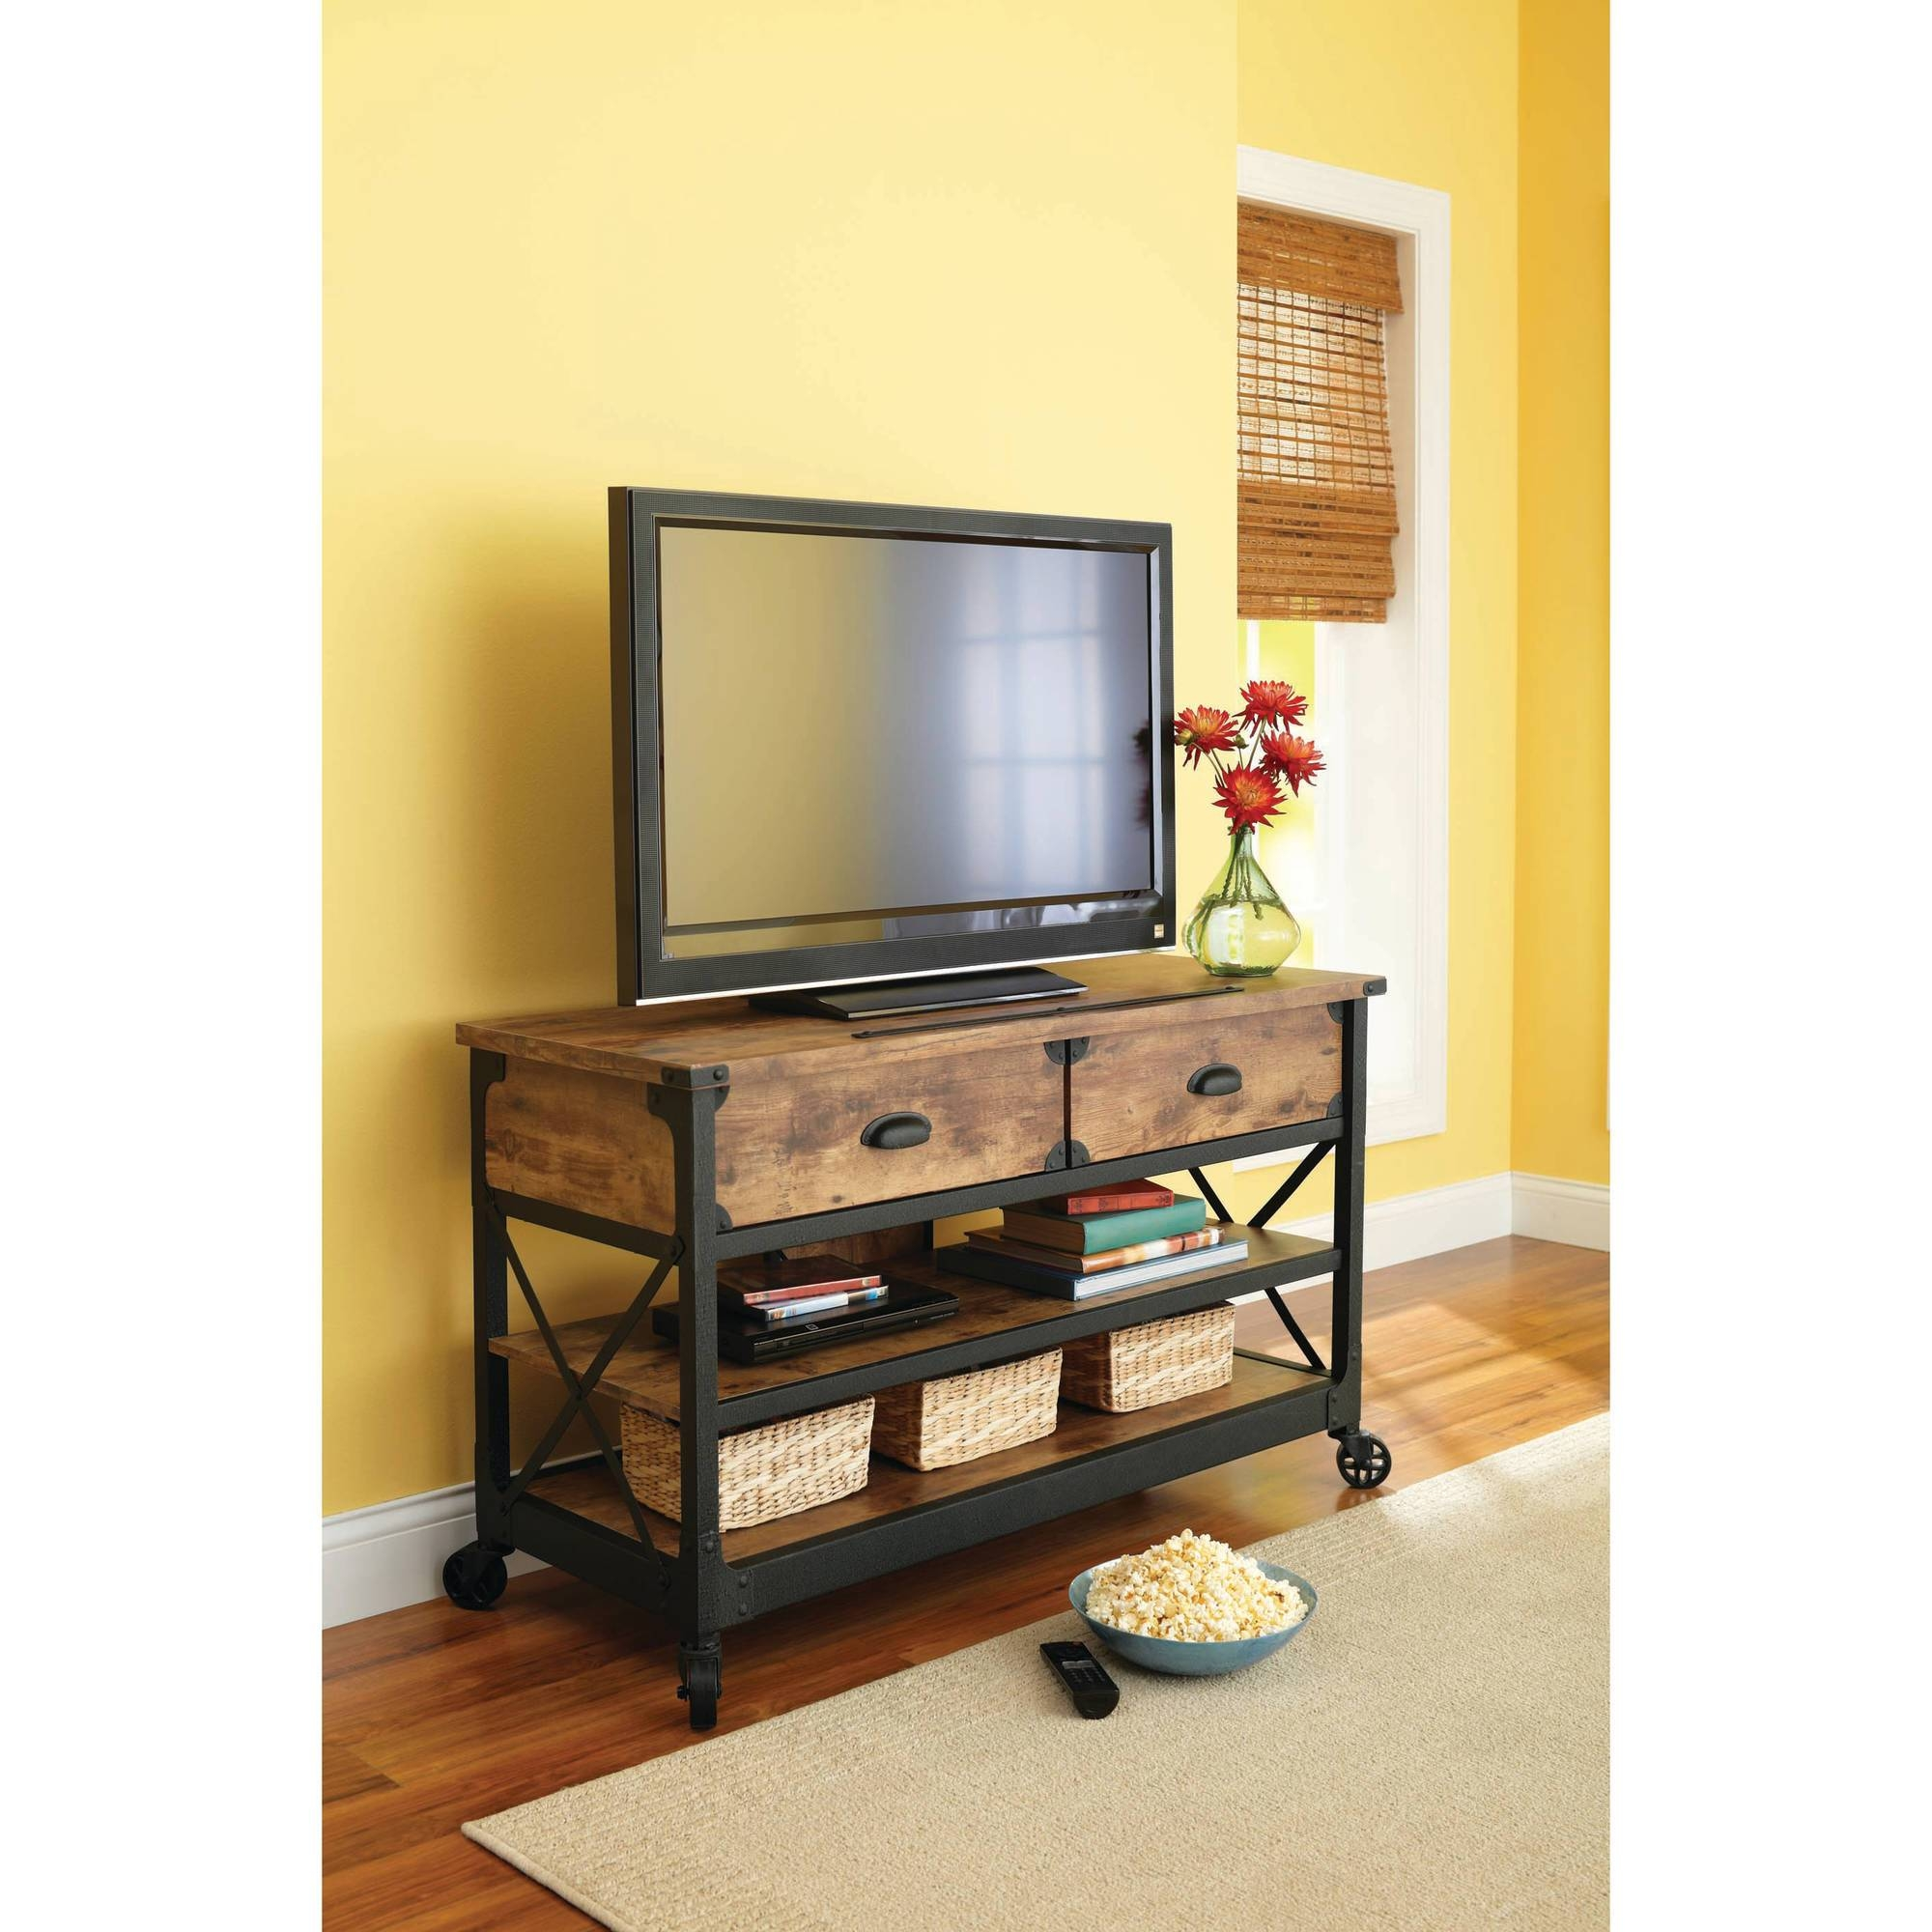 Better Homes And Gardens Rustic Country Living Room Set – Walmart Pertaining To Cheap Rustic Tv Stands (View 15 of 15)